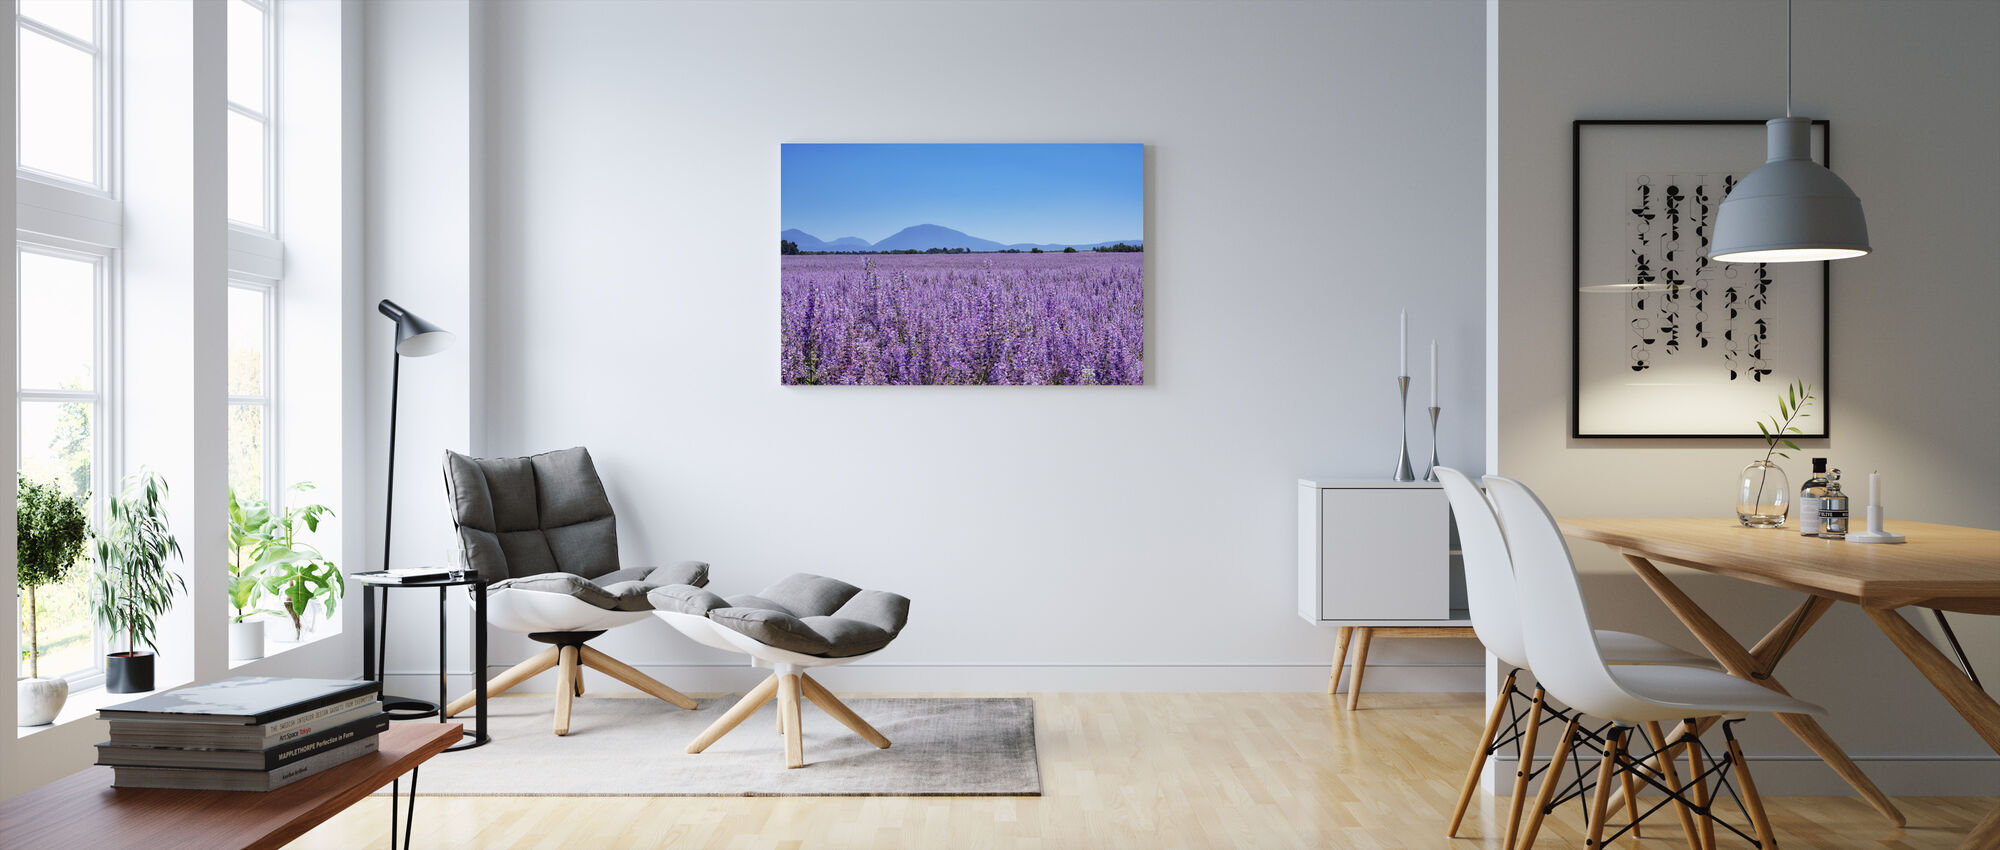 Clary Sage field - Canvas print - Living Room